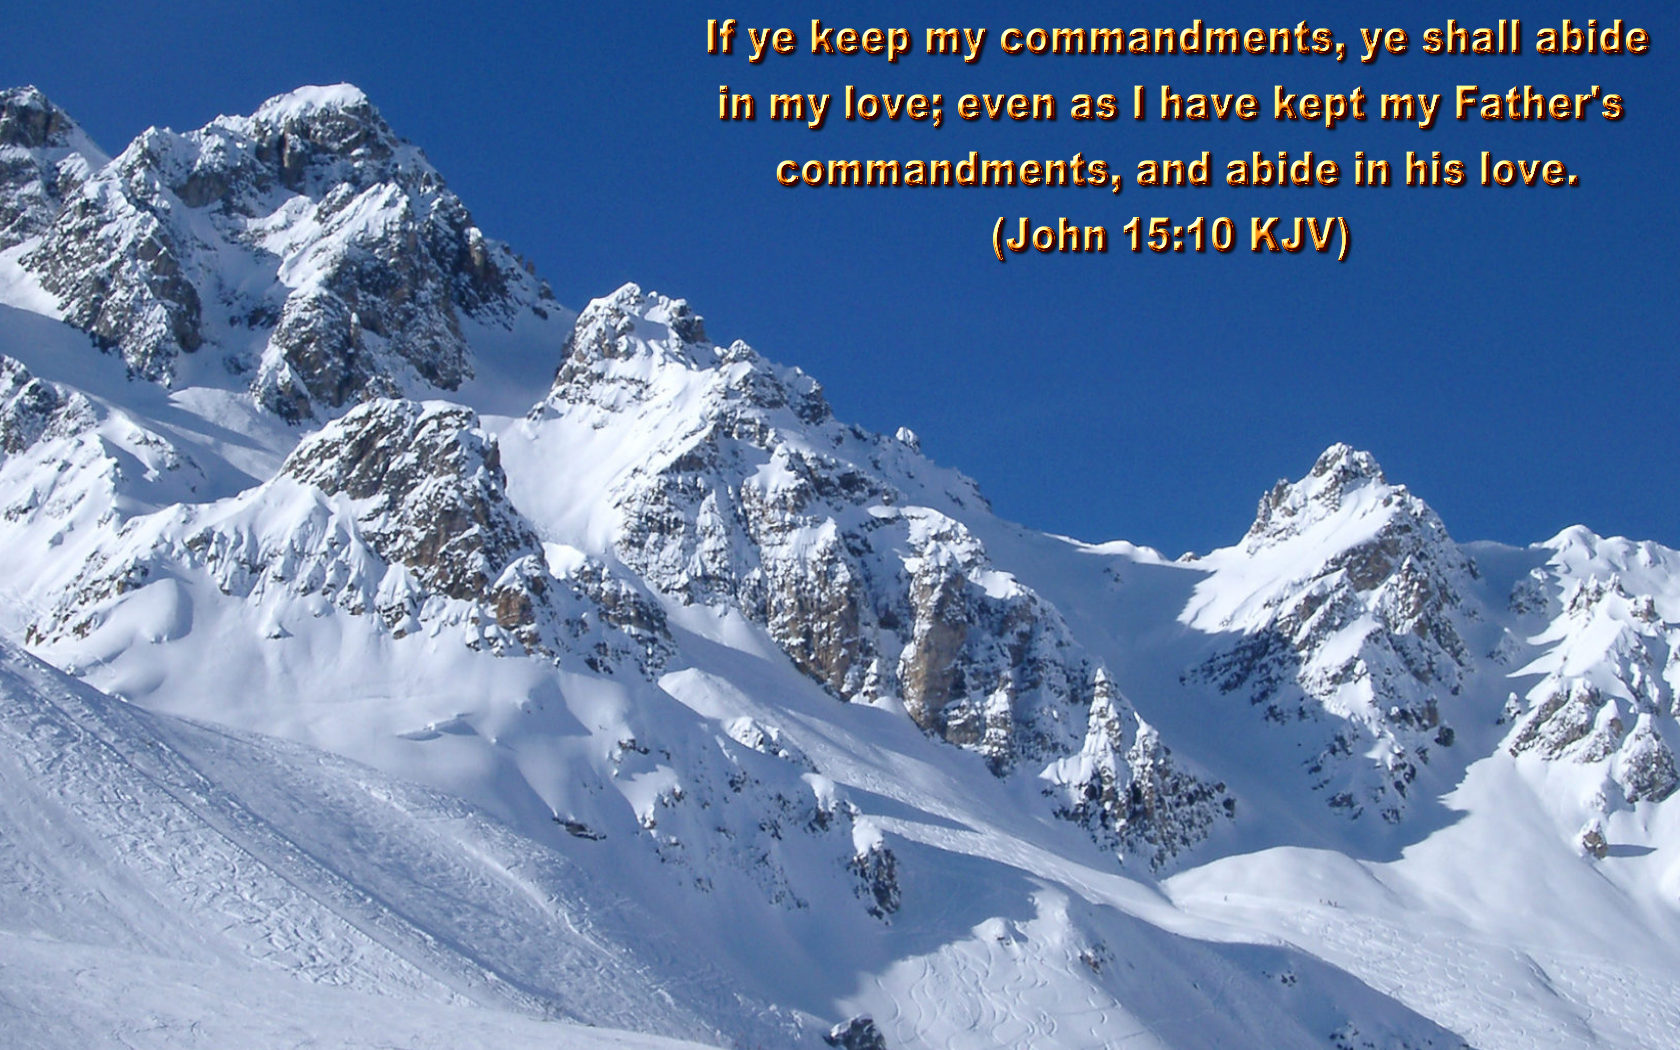 Christian Images With Kjv Bible Verses christian bible verses quotes 1680x1050